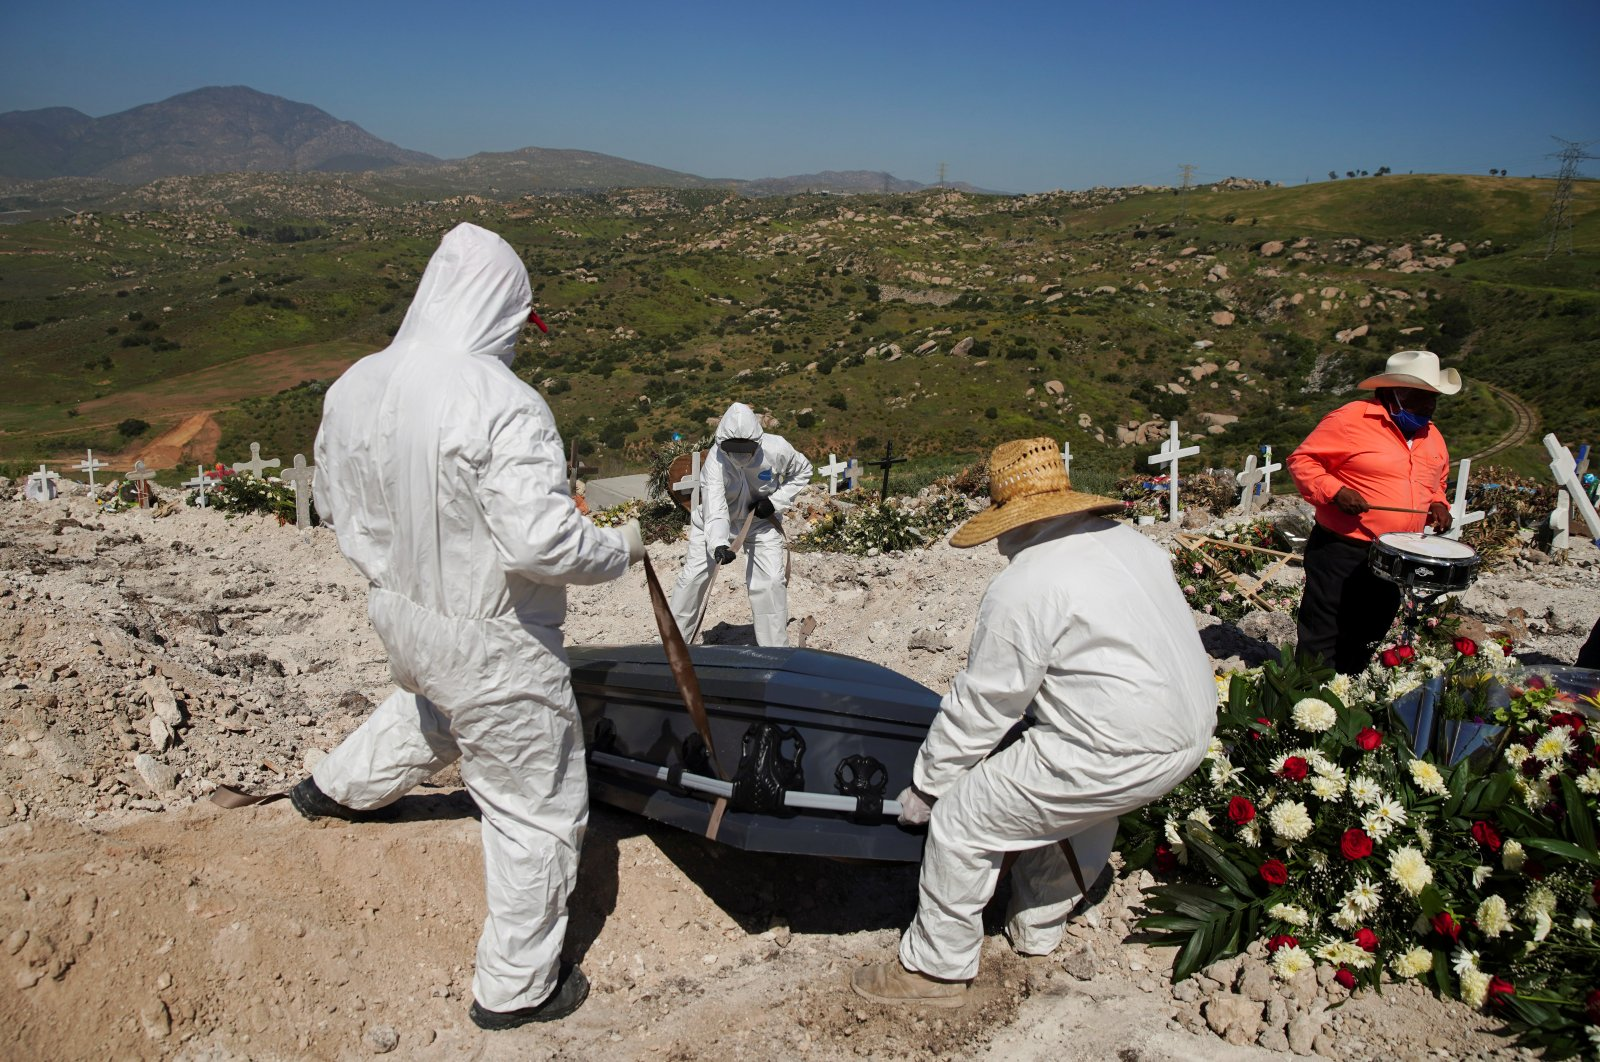 Workers in protective suits place the coffin of Jesus Osorio Flores, who died of the coronavirus disease (COVID-19), into a grave at Tijuana Municipal Cemetery No. 13, in Tijuana, Mexico April 24, 2020. (Reuters Photo)